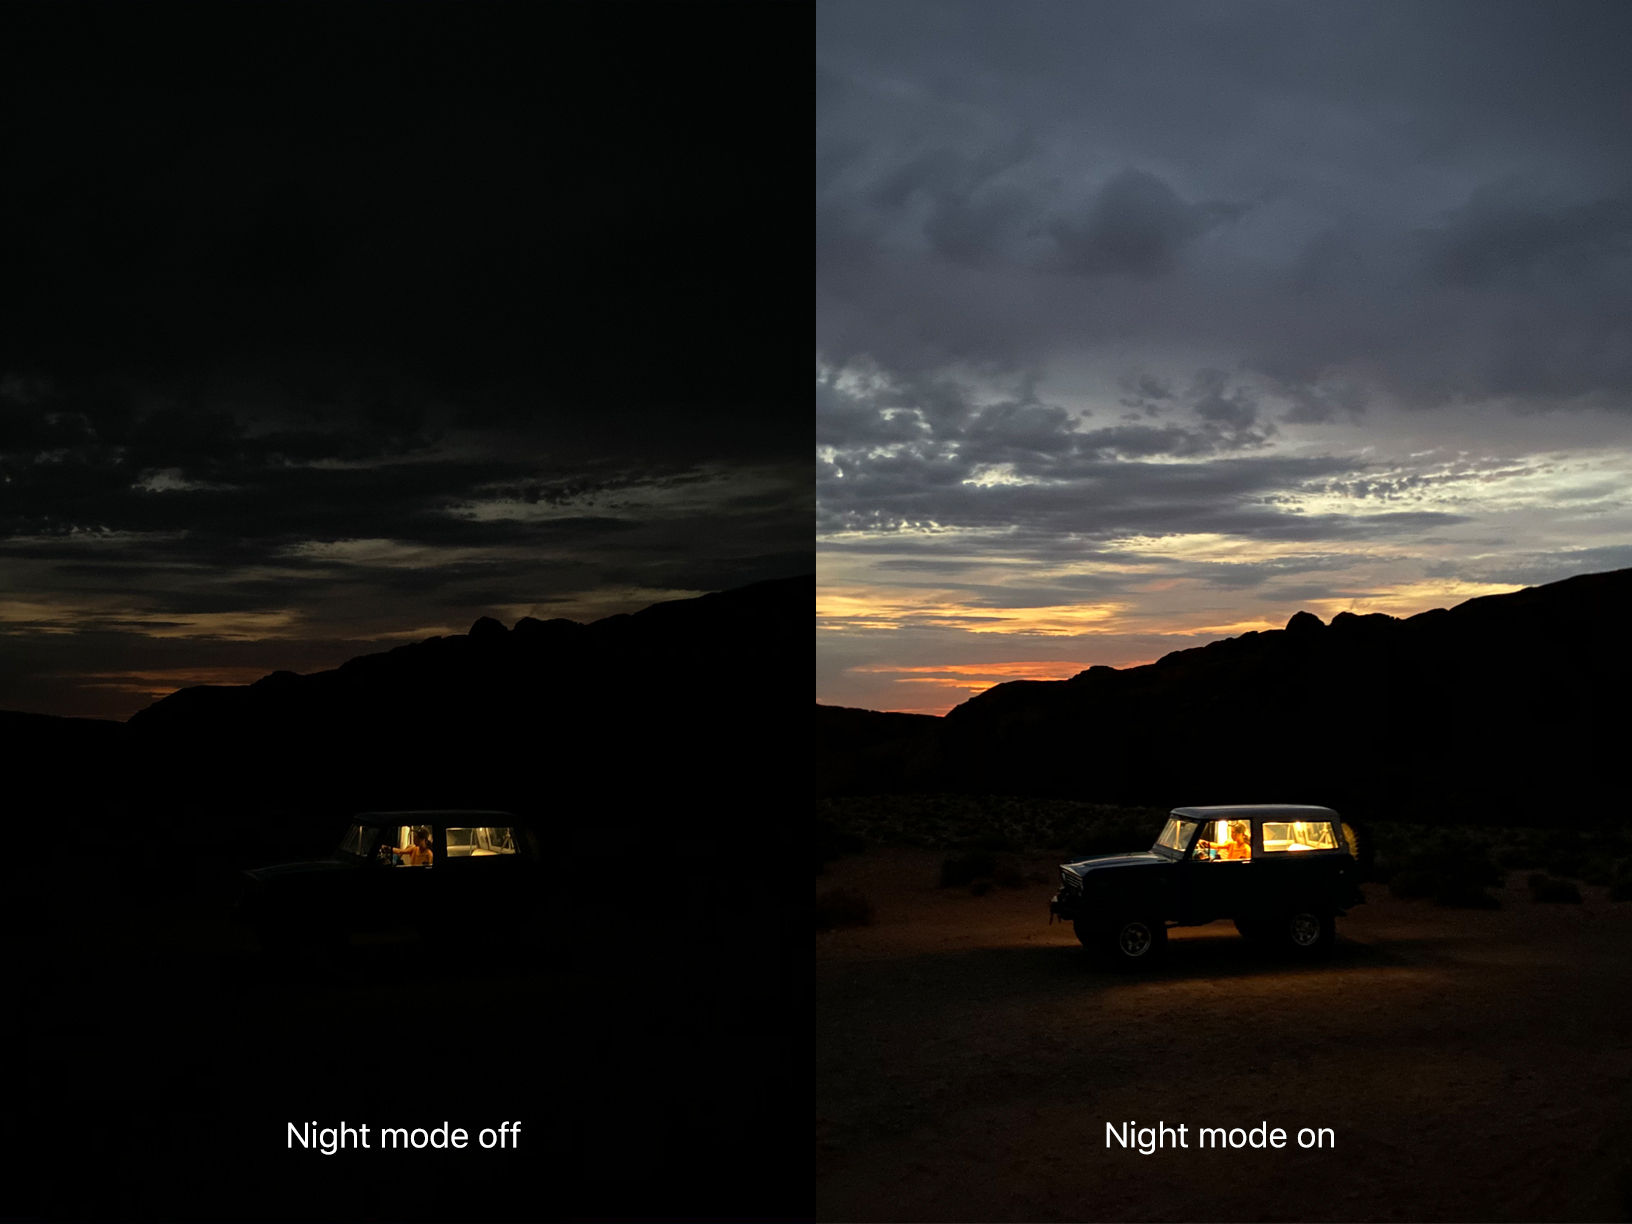 The new triple-camera system offers major advancements in photography, including Night mode. (Image via Apple)